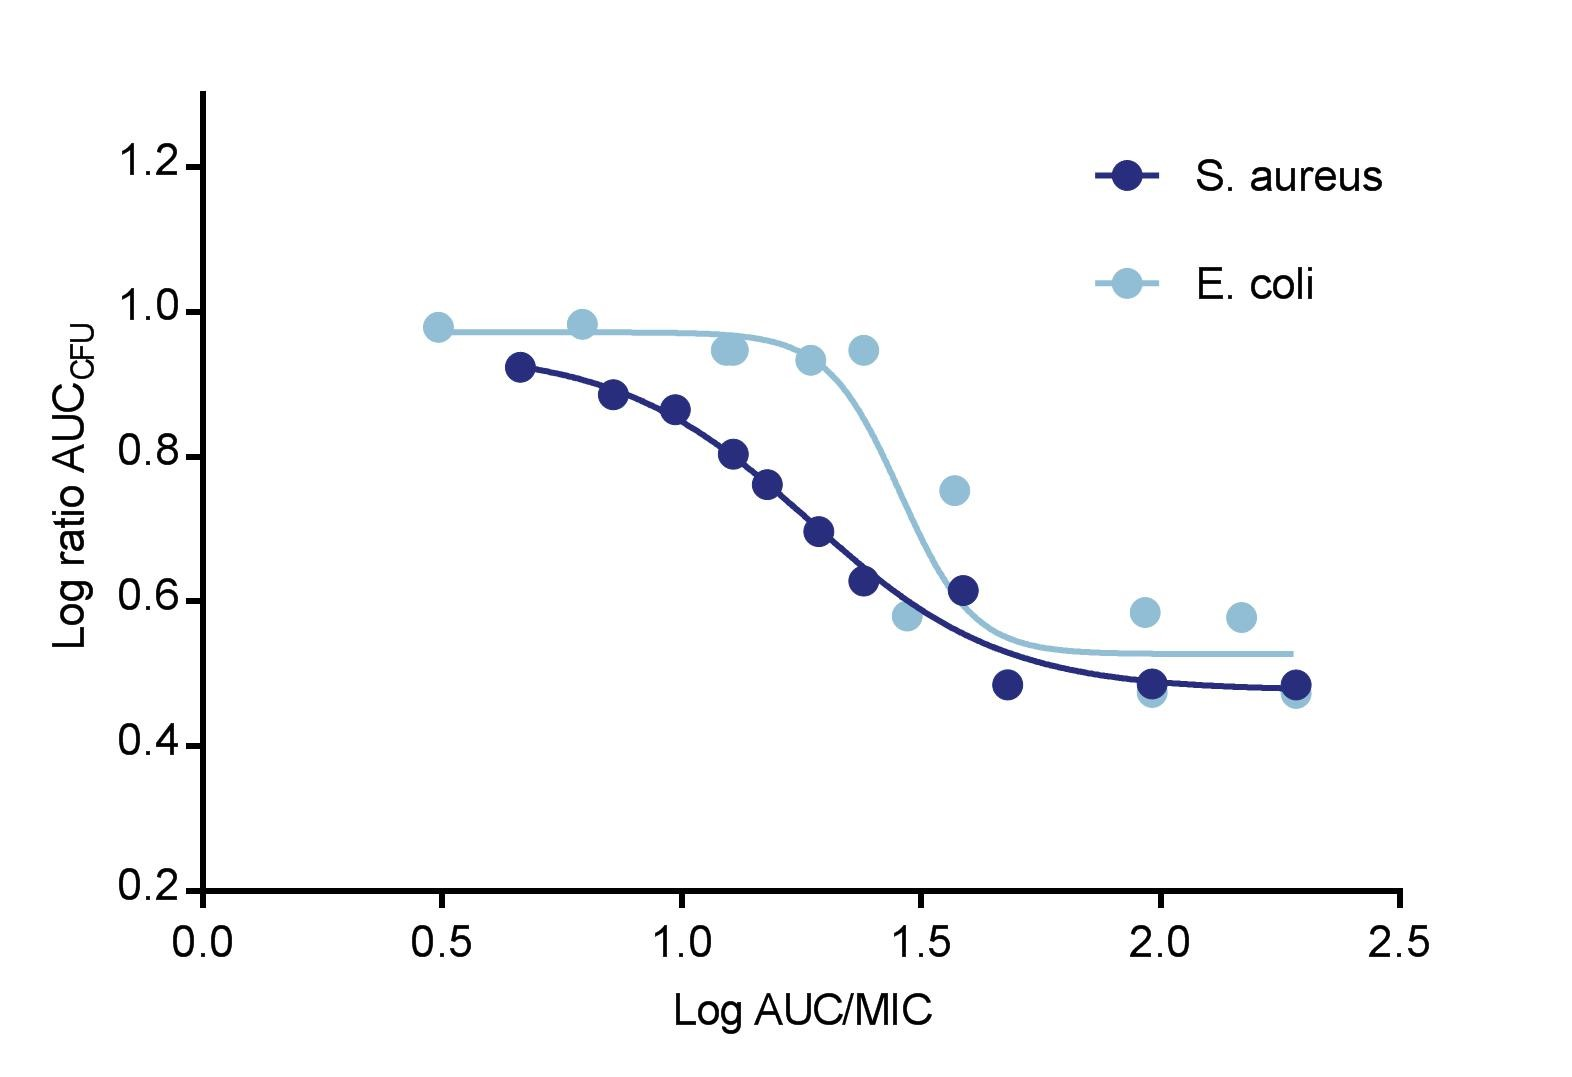 chart showing correlation of AUC against AUCCFU of E. coli and S. aureus